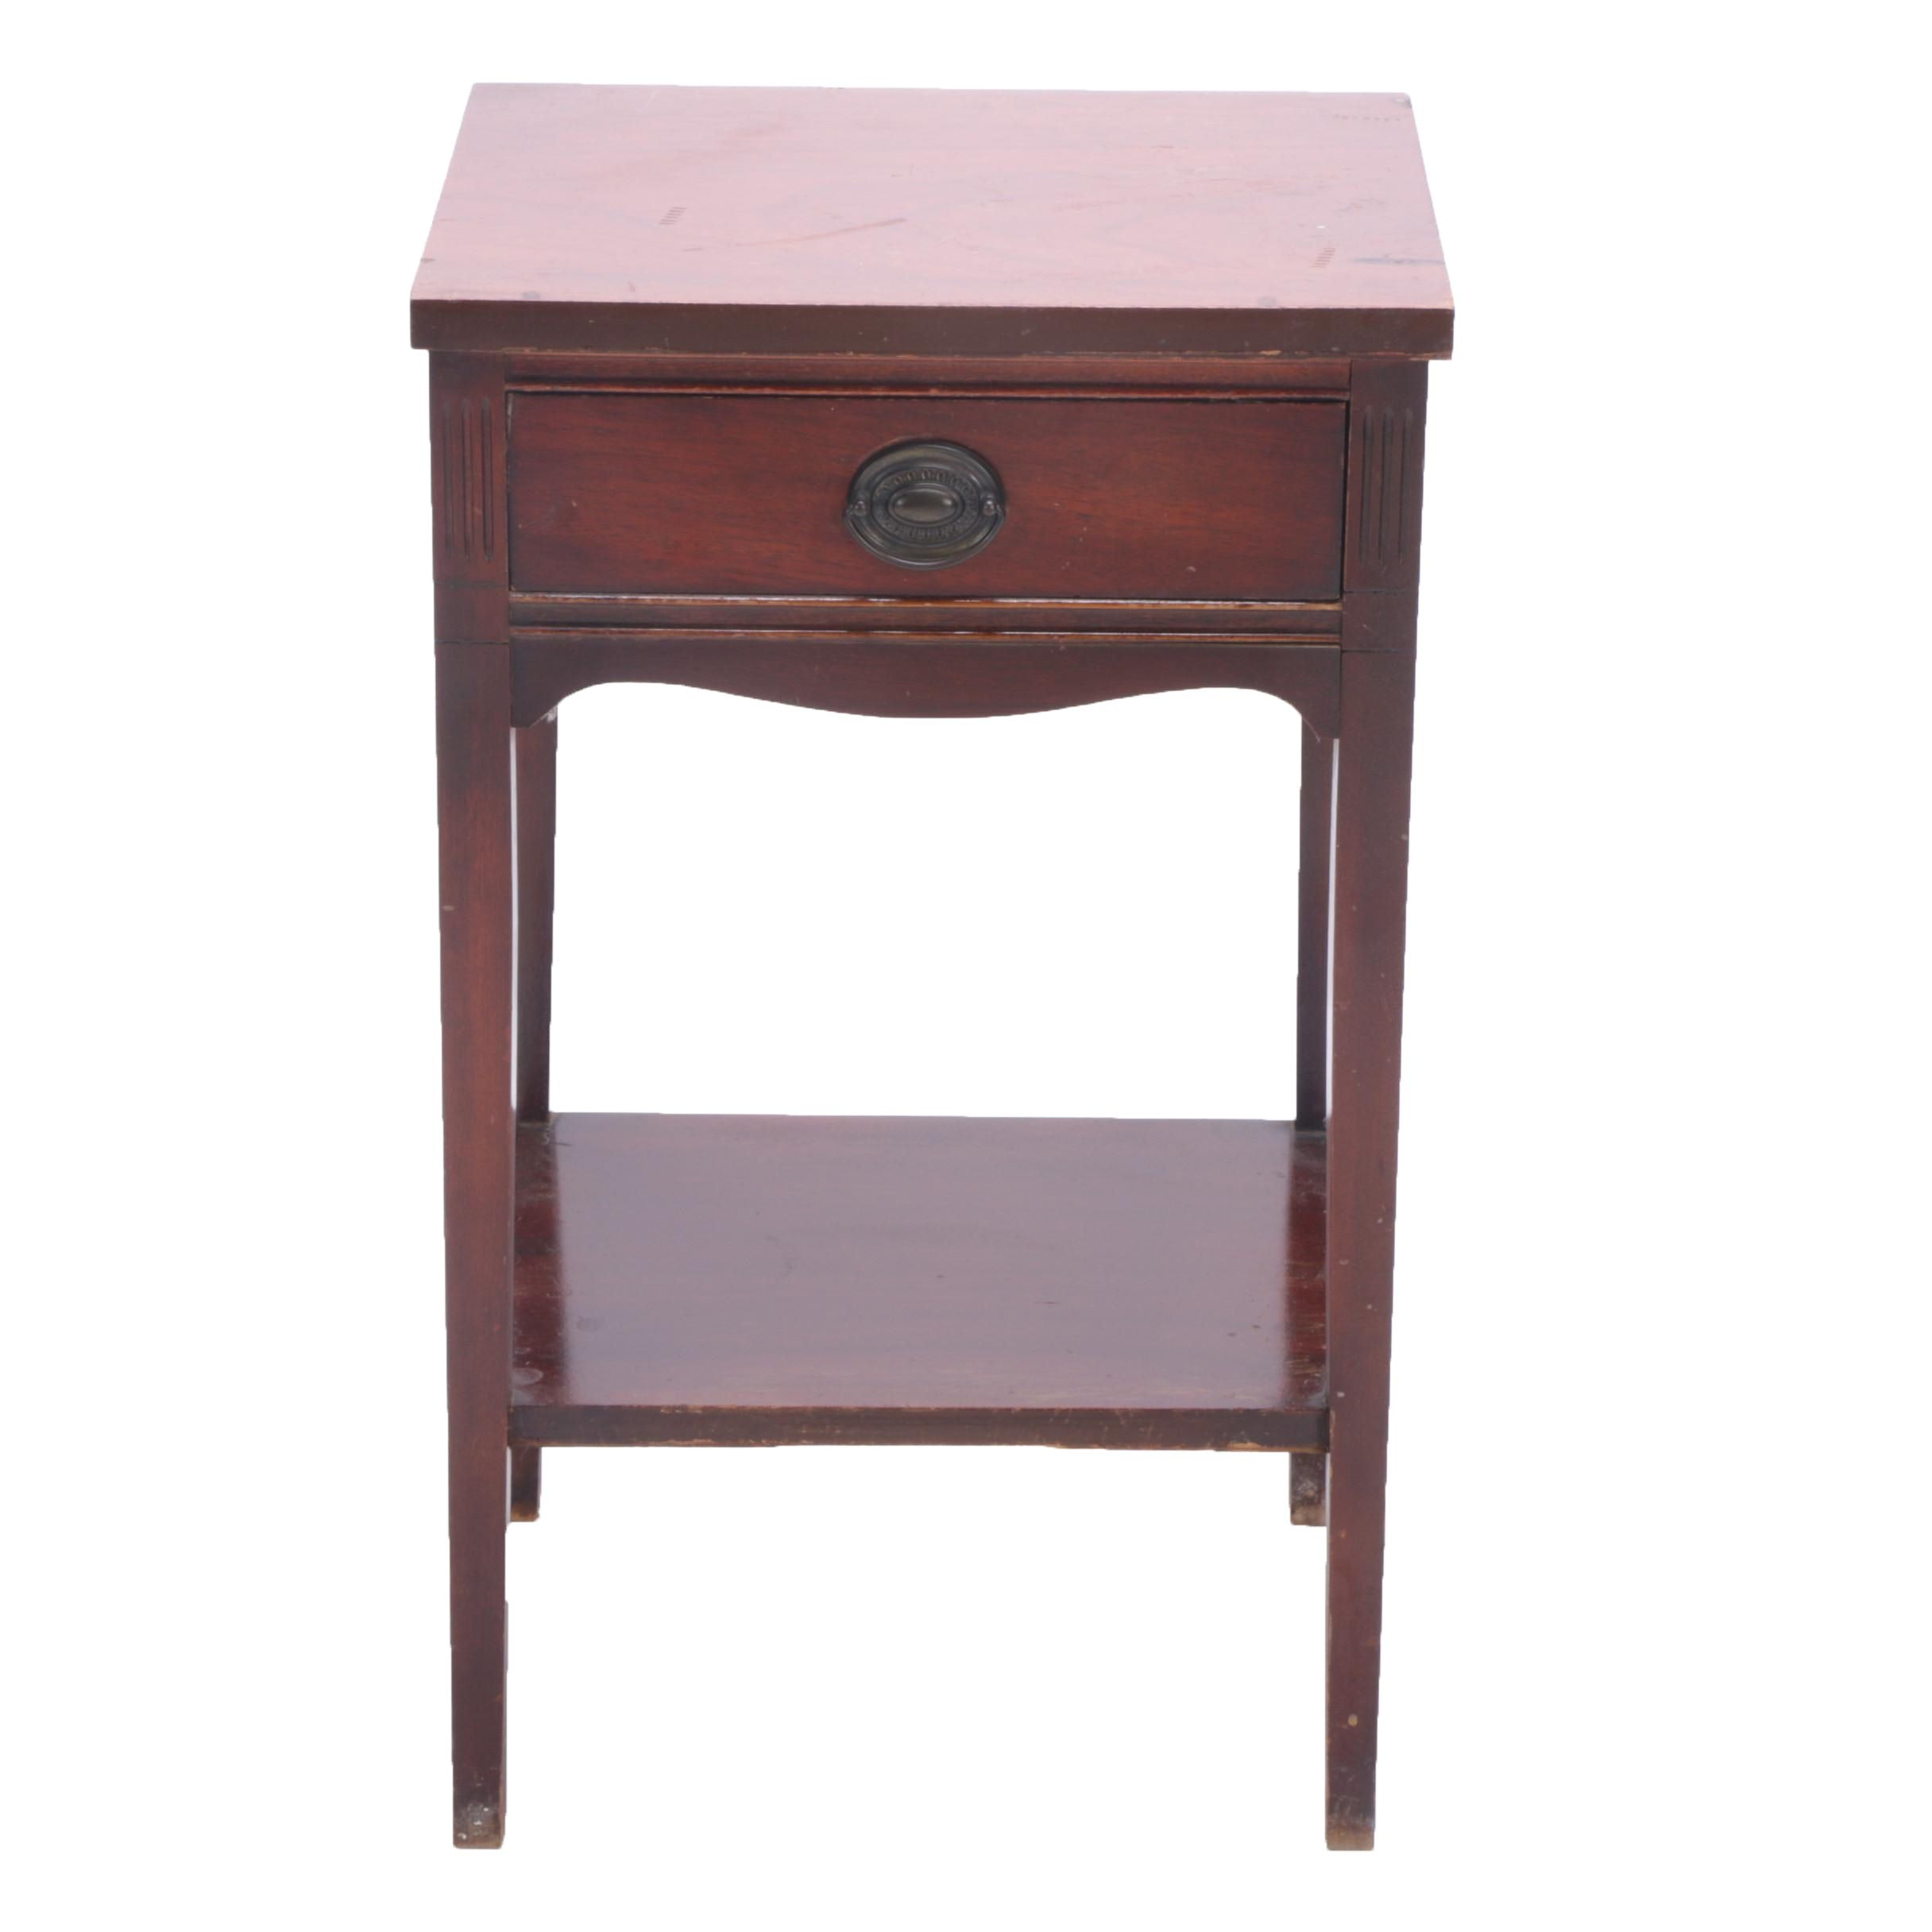 Vintage Hepplewhite Style End Table by Dixie